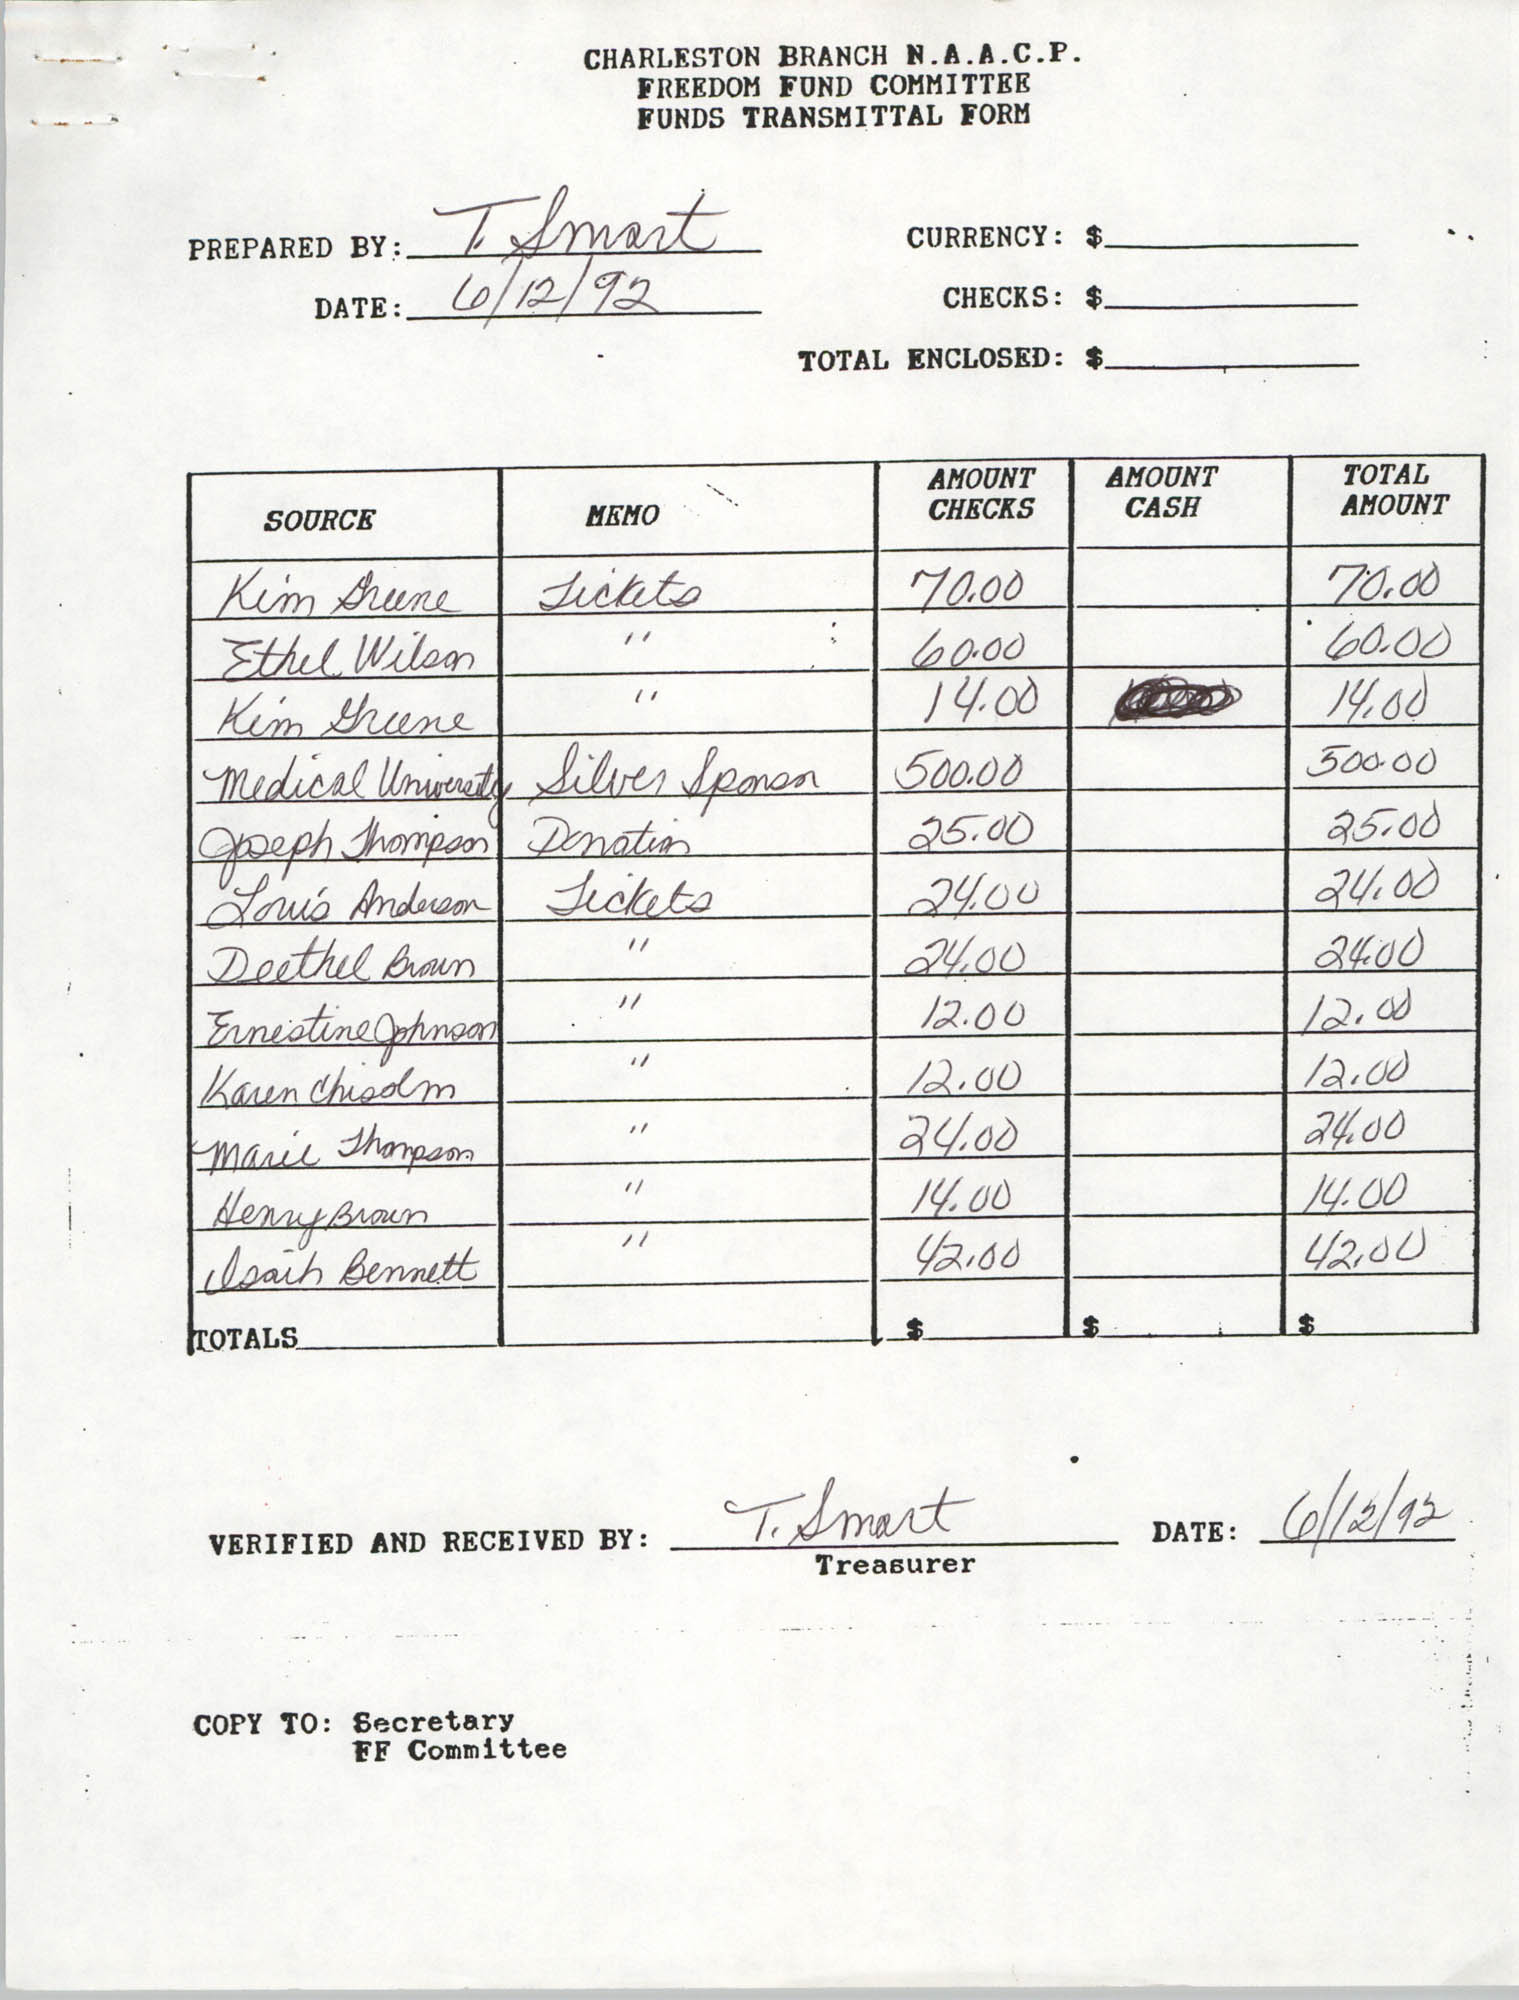 Charleston Branch of the NAACP Funds Transmittal Forms, June 1992, Page 1